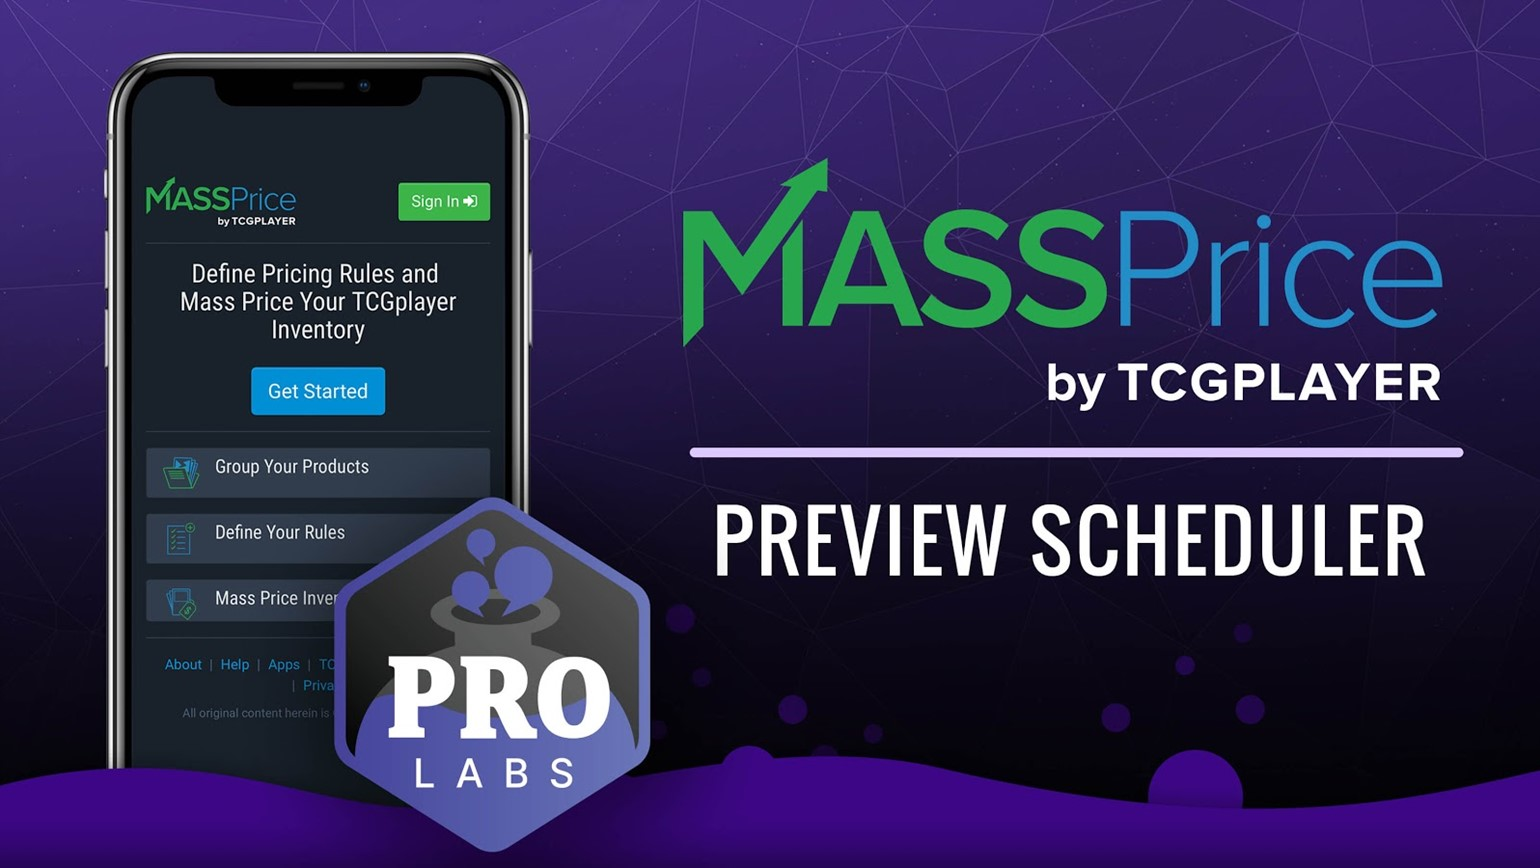 Sellers in Pro Labs Improve MassPrice Scheduler